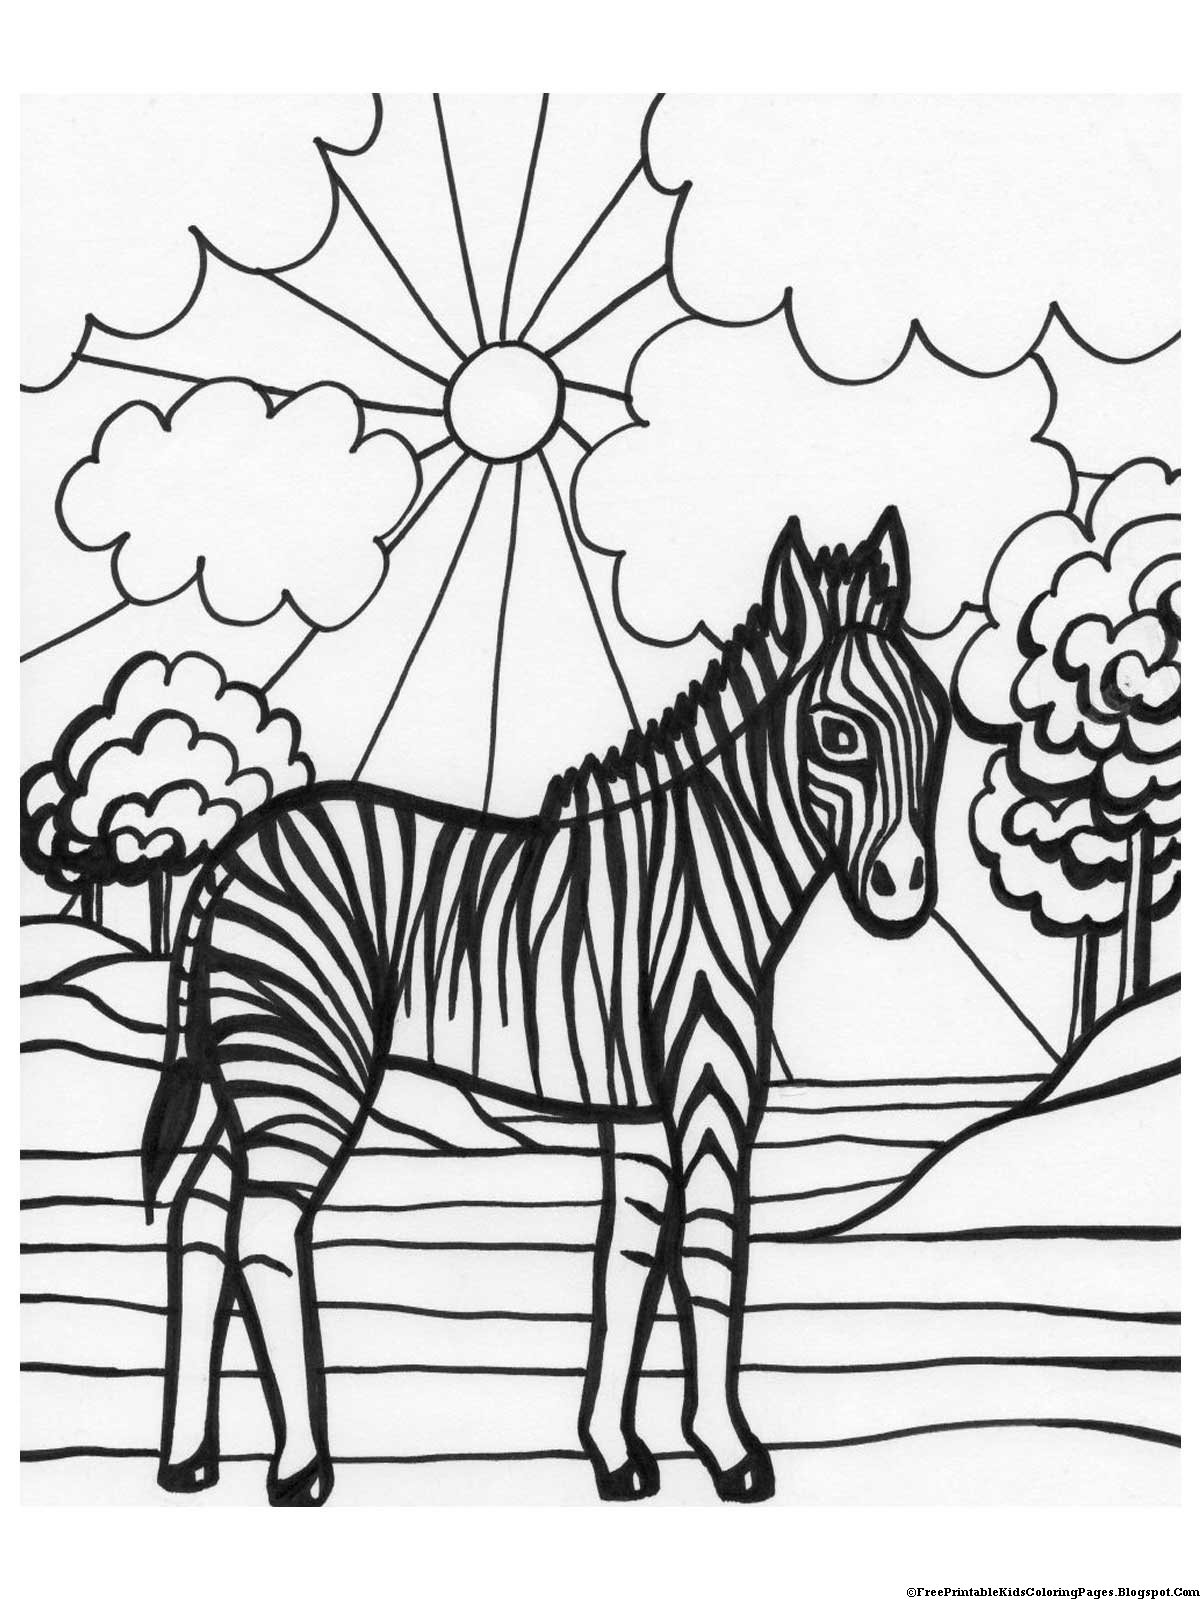 coloring printouts for kids free printable tangled coloring pages for kids cool2bkids printouts kids for coloring